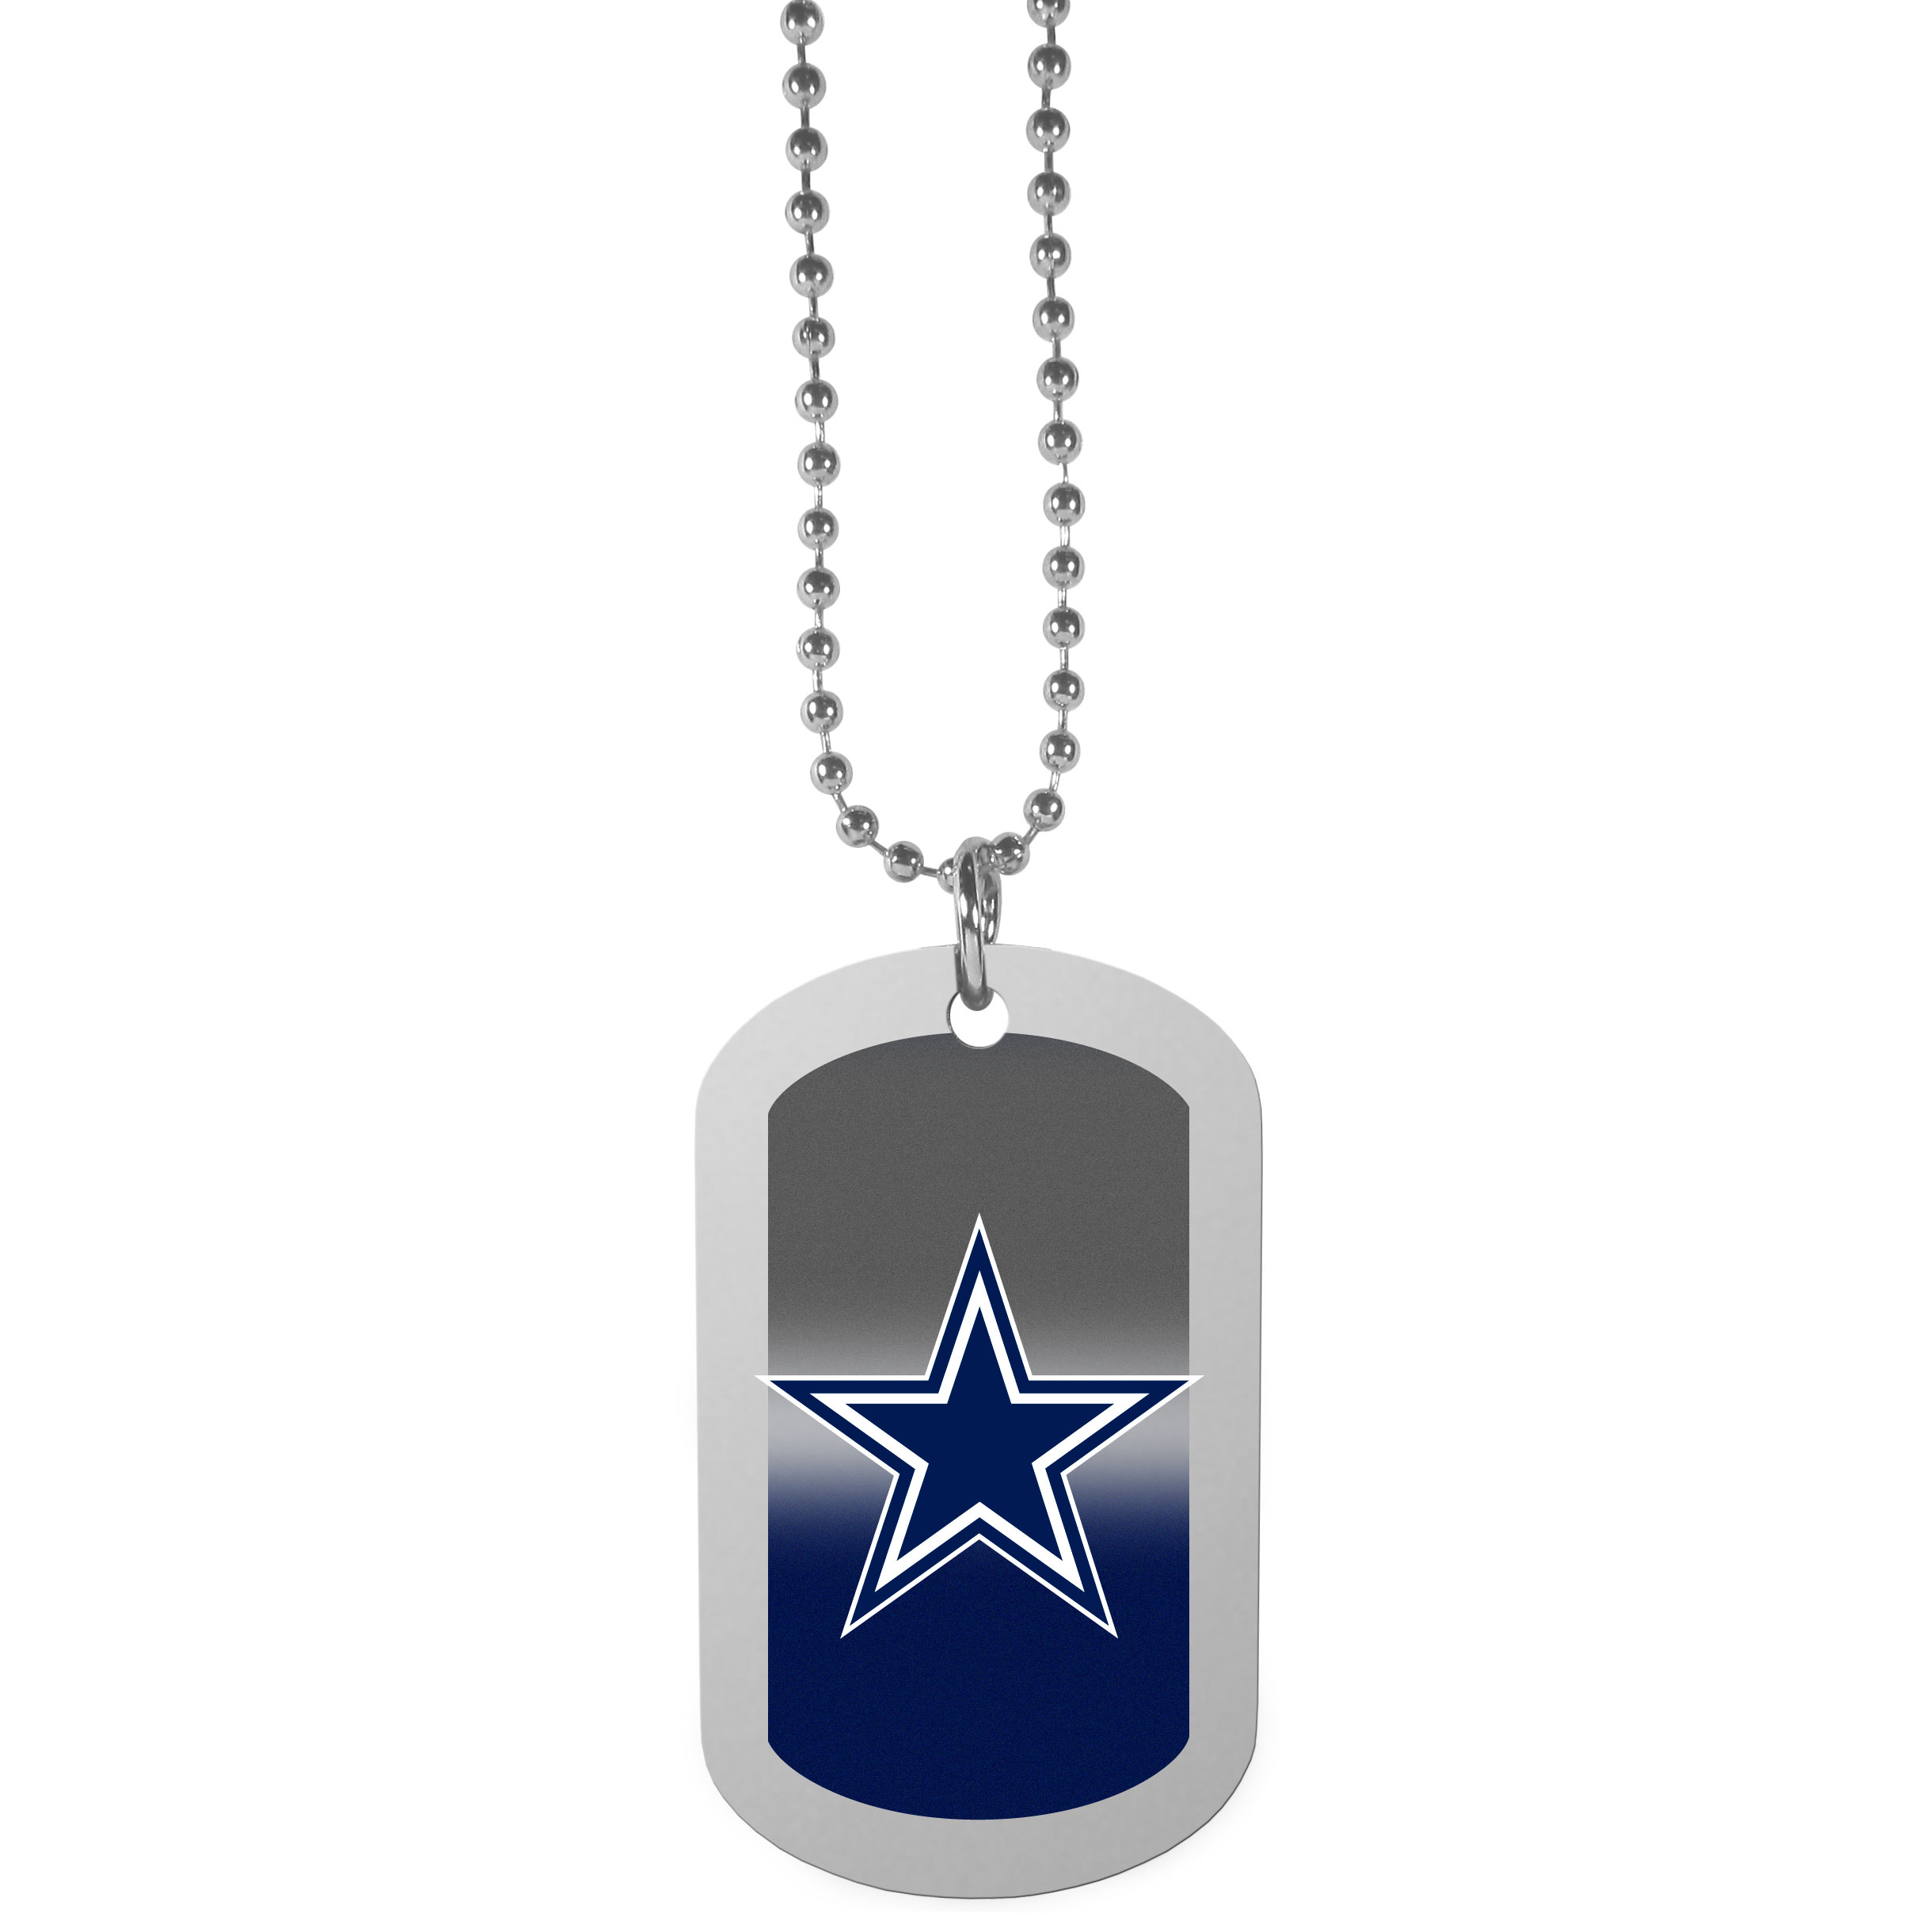 Dallas Cowboys Team Tag Necklace - Dog tag necklaces are a fashion statement that is here to stay. The sporty version of the classic tag features a gradient print in team colors featuring a full color team logo over a high polish tag to create a bold and sporty look. The tag comes on a 26 inch ball chain with a ball and joint clasp. Any Dallas Cowboys would be proud to wear this attractive fashion accessory.